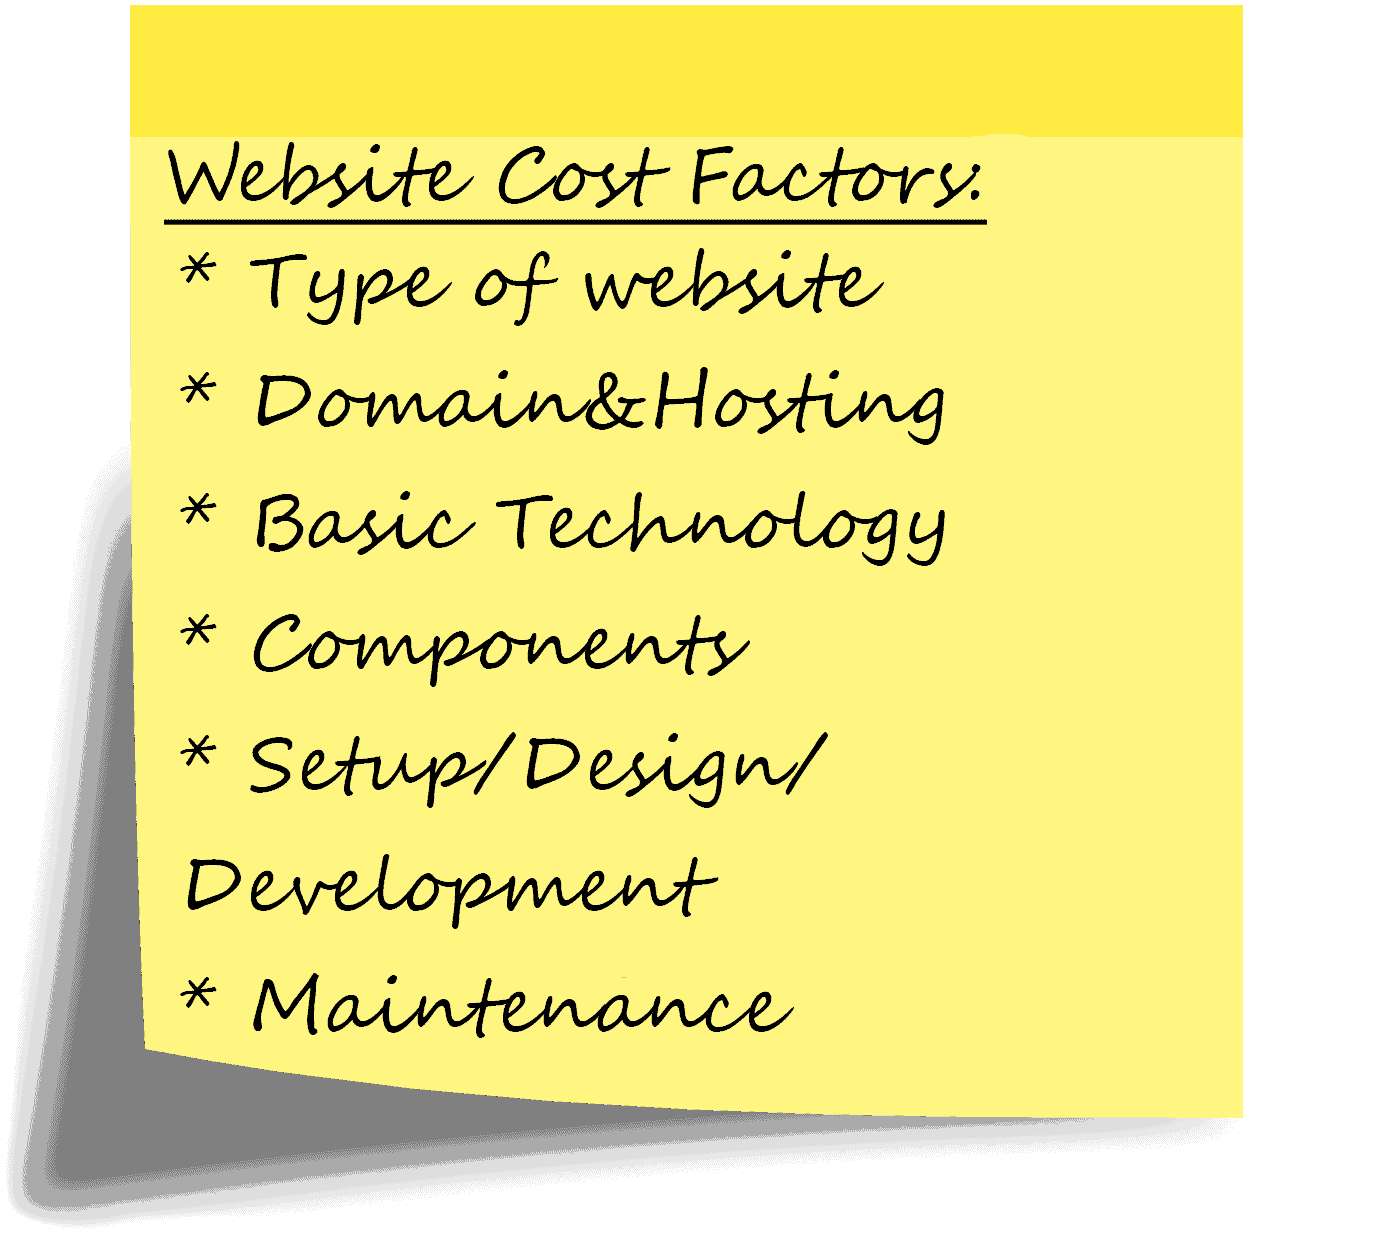 website cost factors